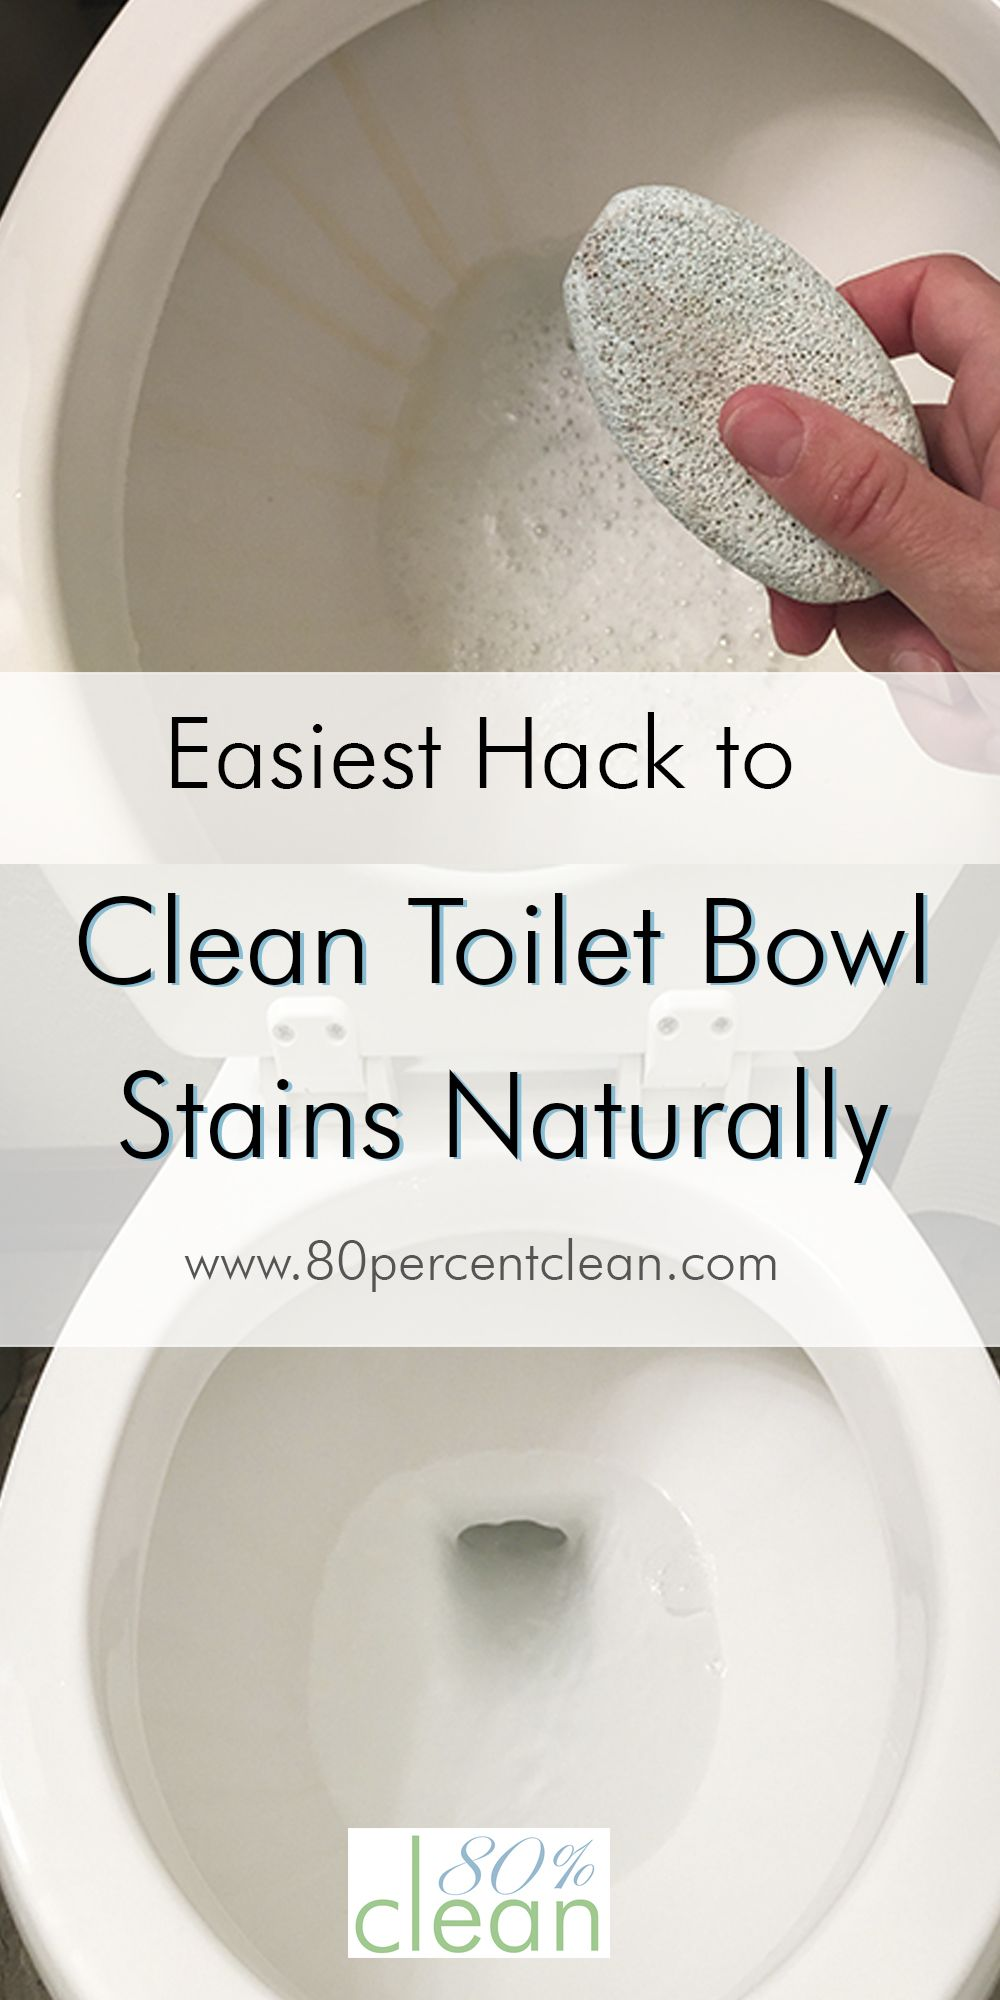 The Easiest Hack To Clean Toilet Bowl Stains Naturally Clean